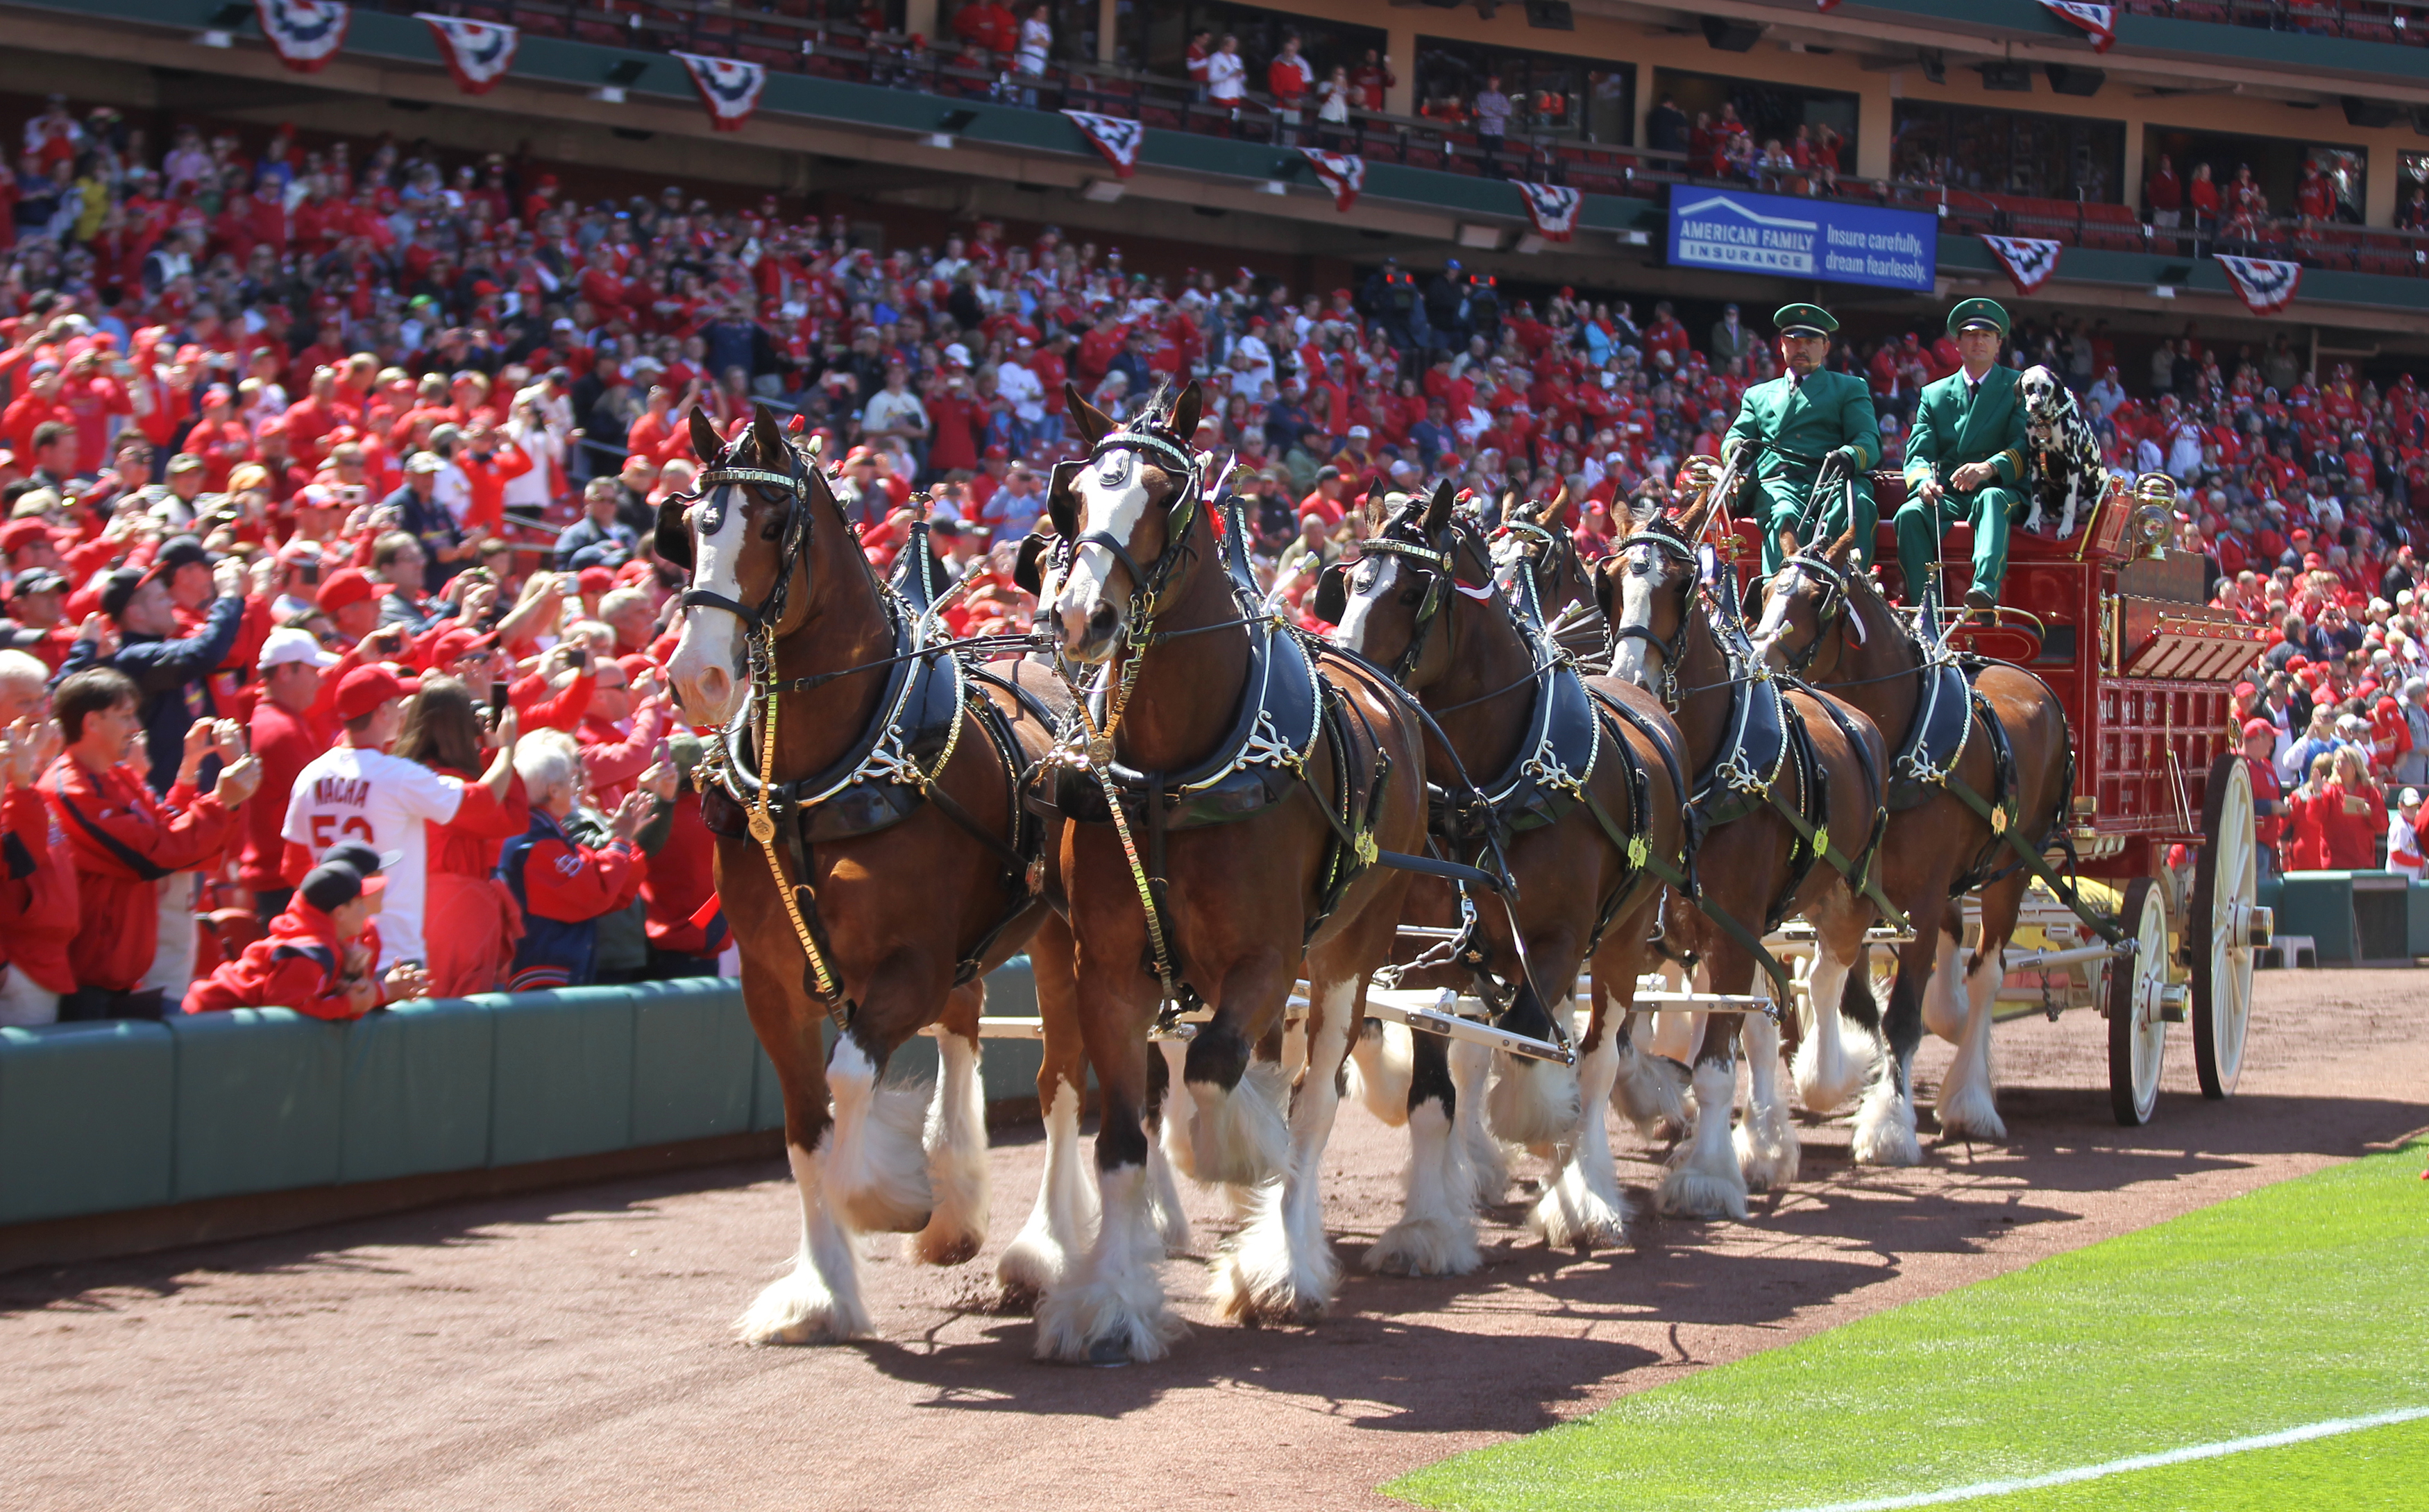 Photo of MLB – 1985 – The Budweiser Clydesdales At Busch Stadium For World Series Game 3 With Royals Vs Cardinals